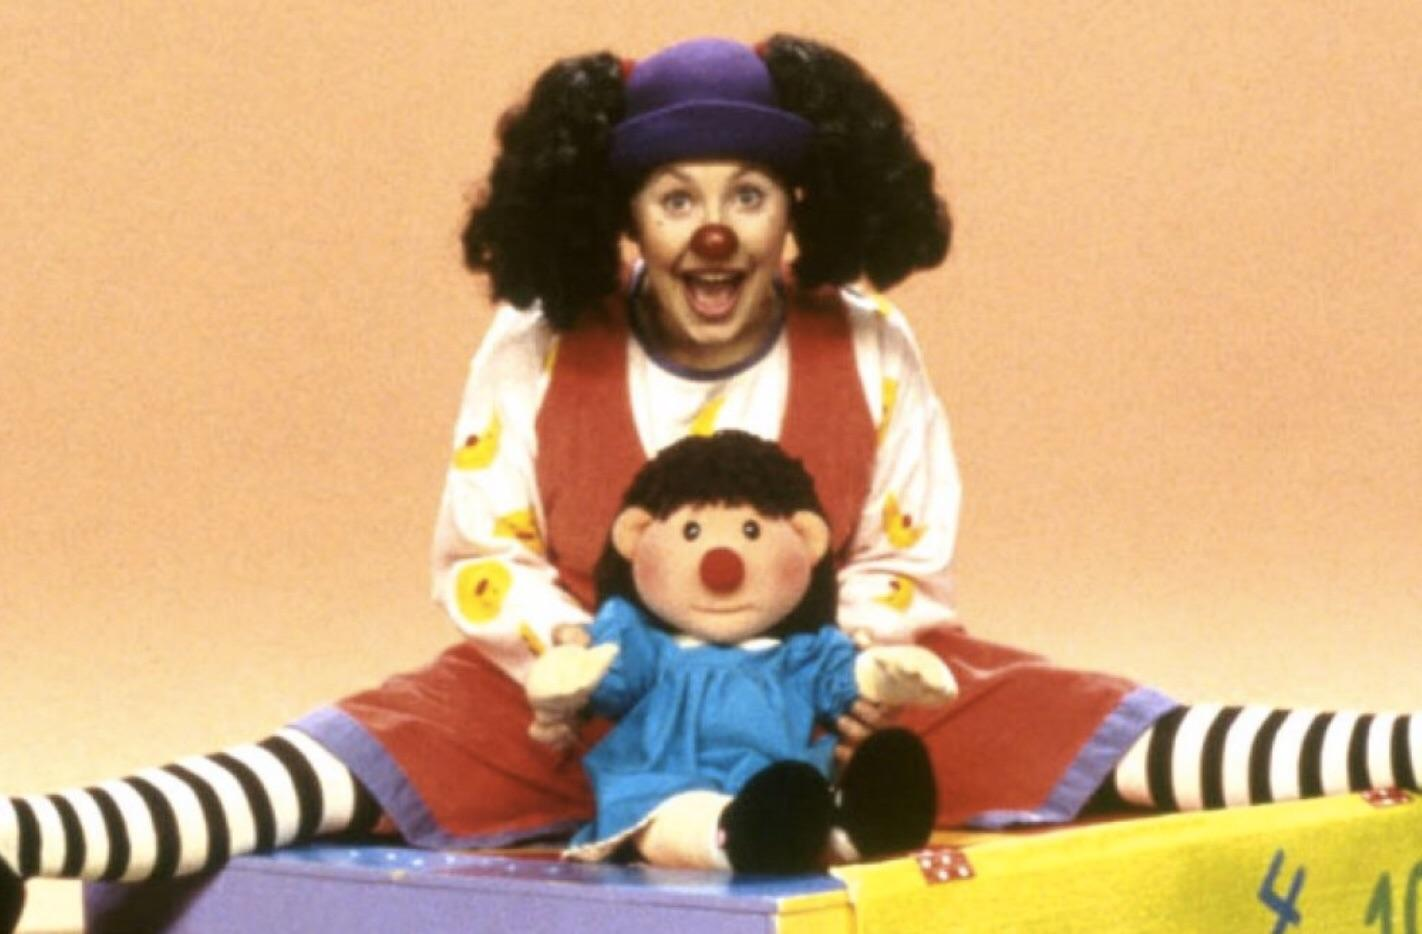 Big Couch Clown The Big Comfy Couch Molly Was My Favorite Nostalgia